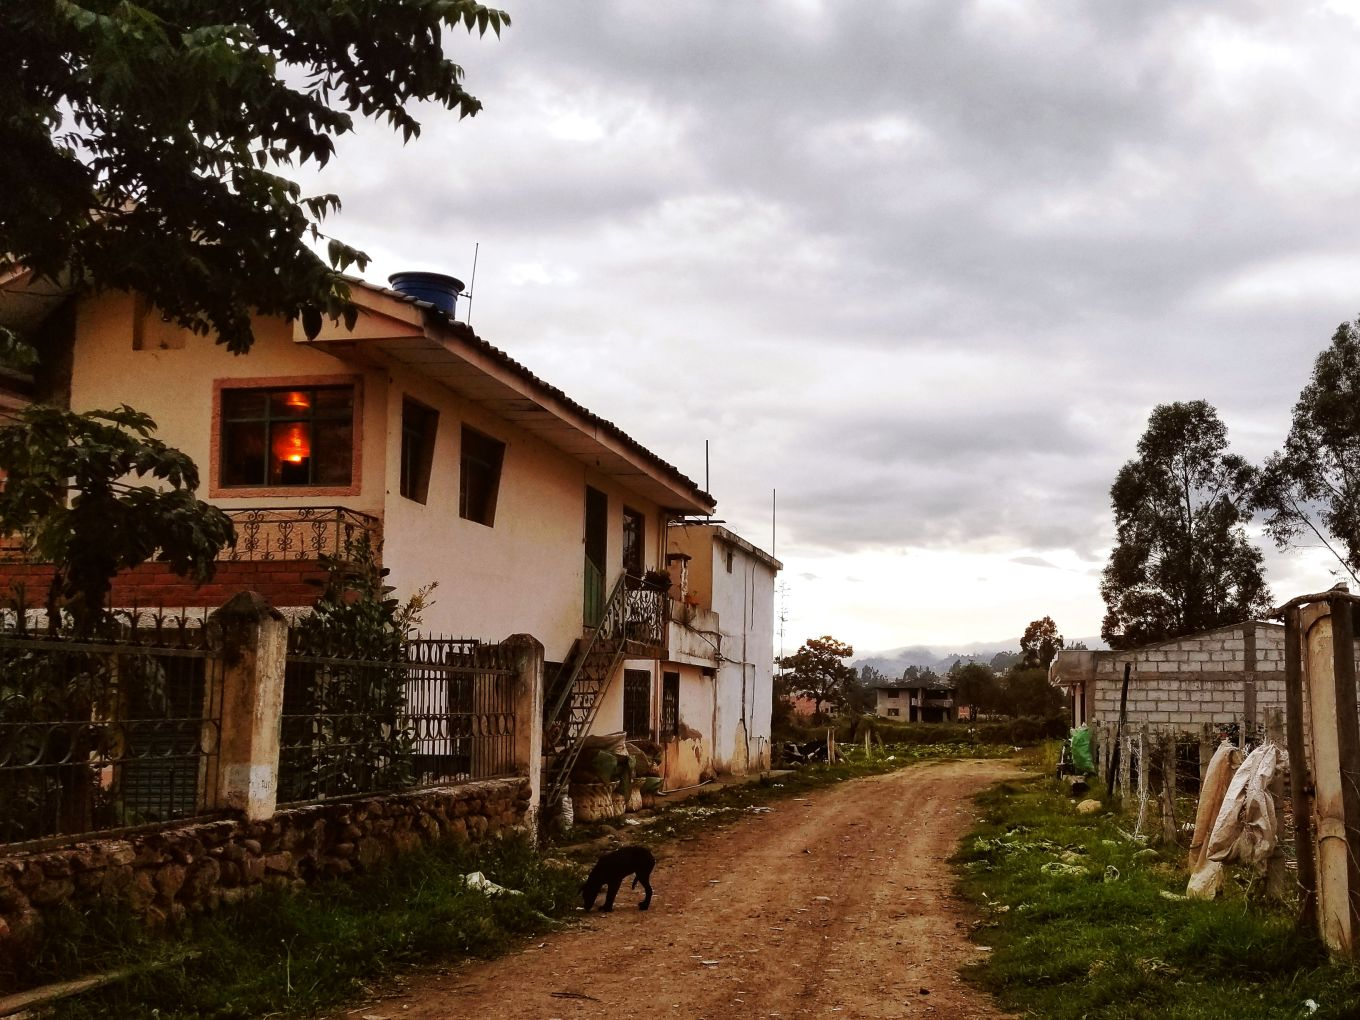 A backroad in Cuenca, Ecuador